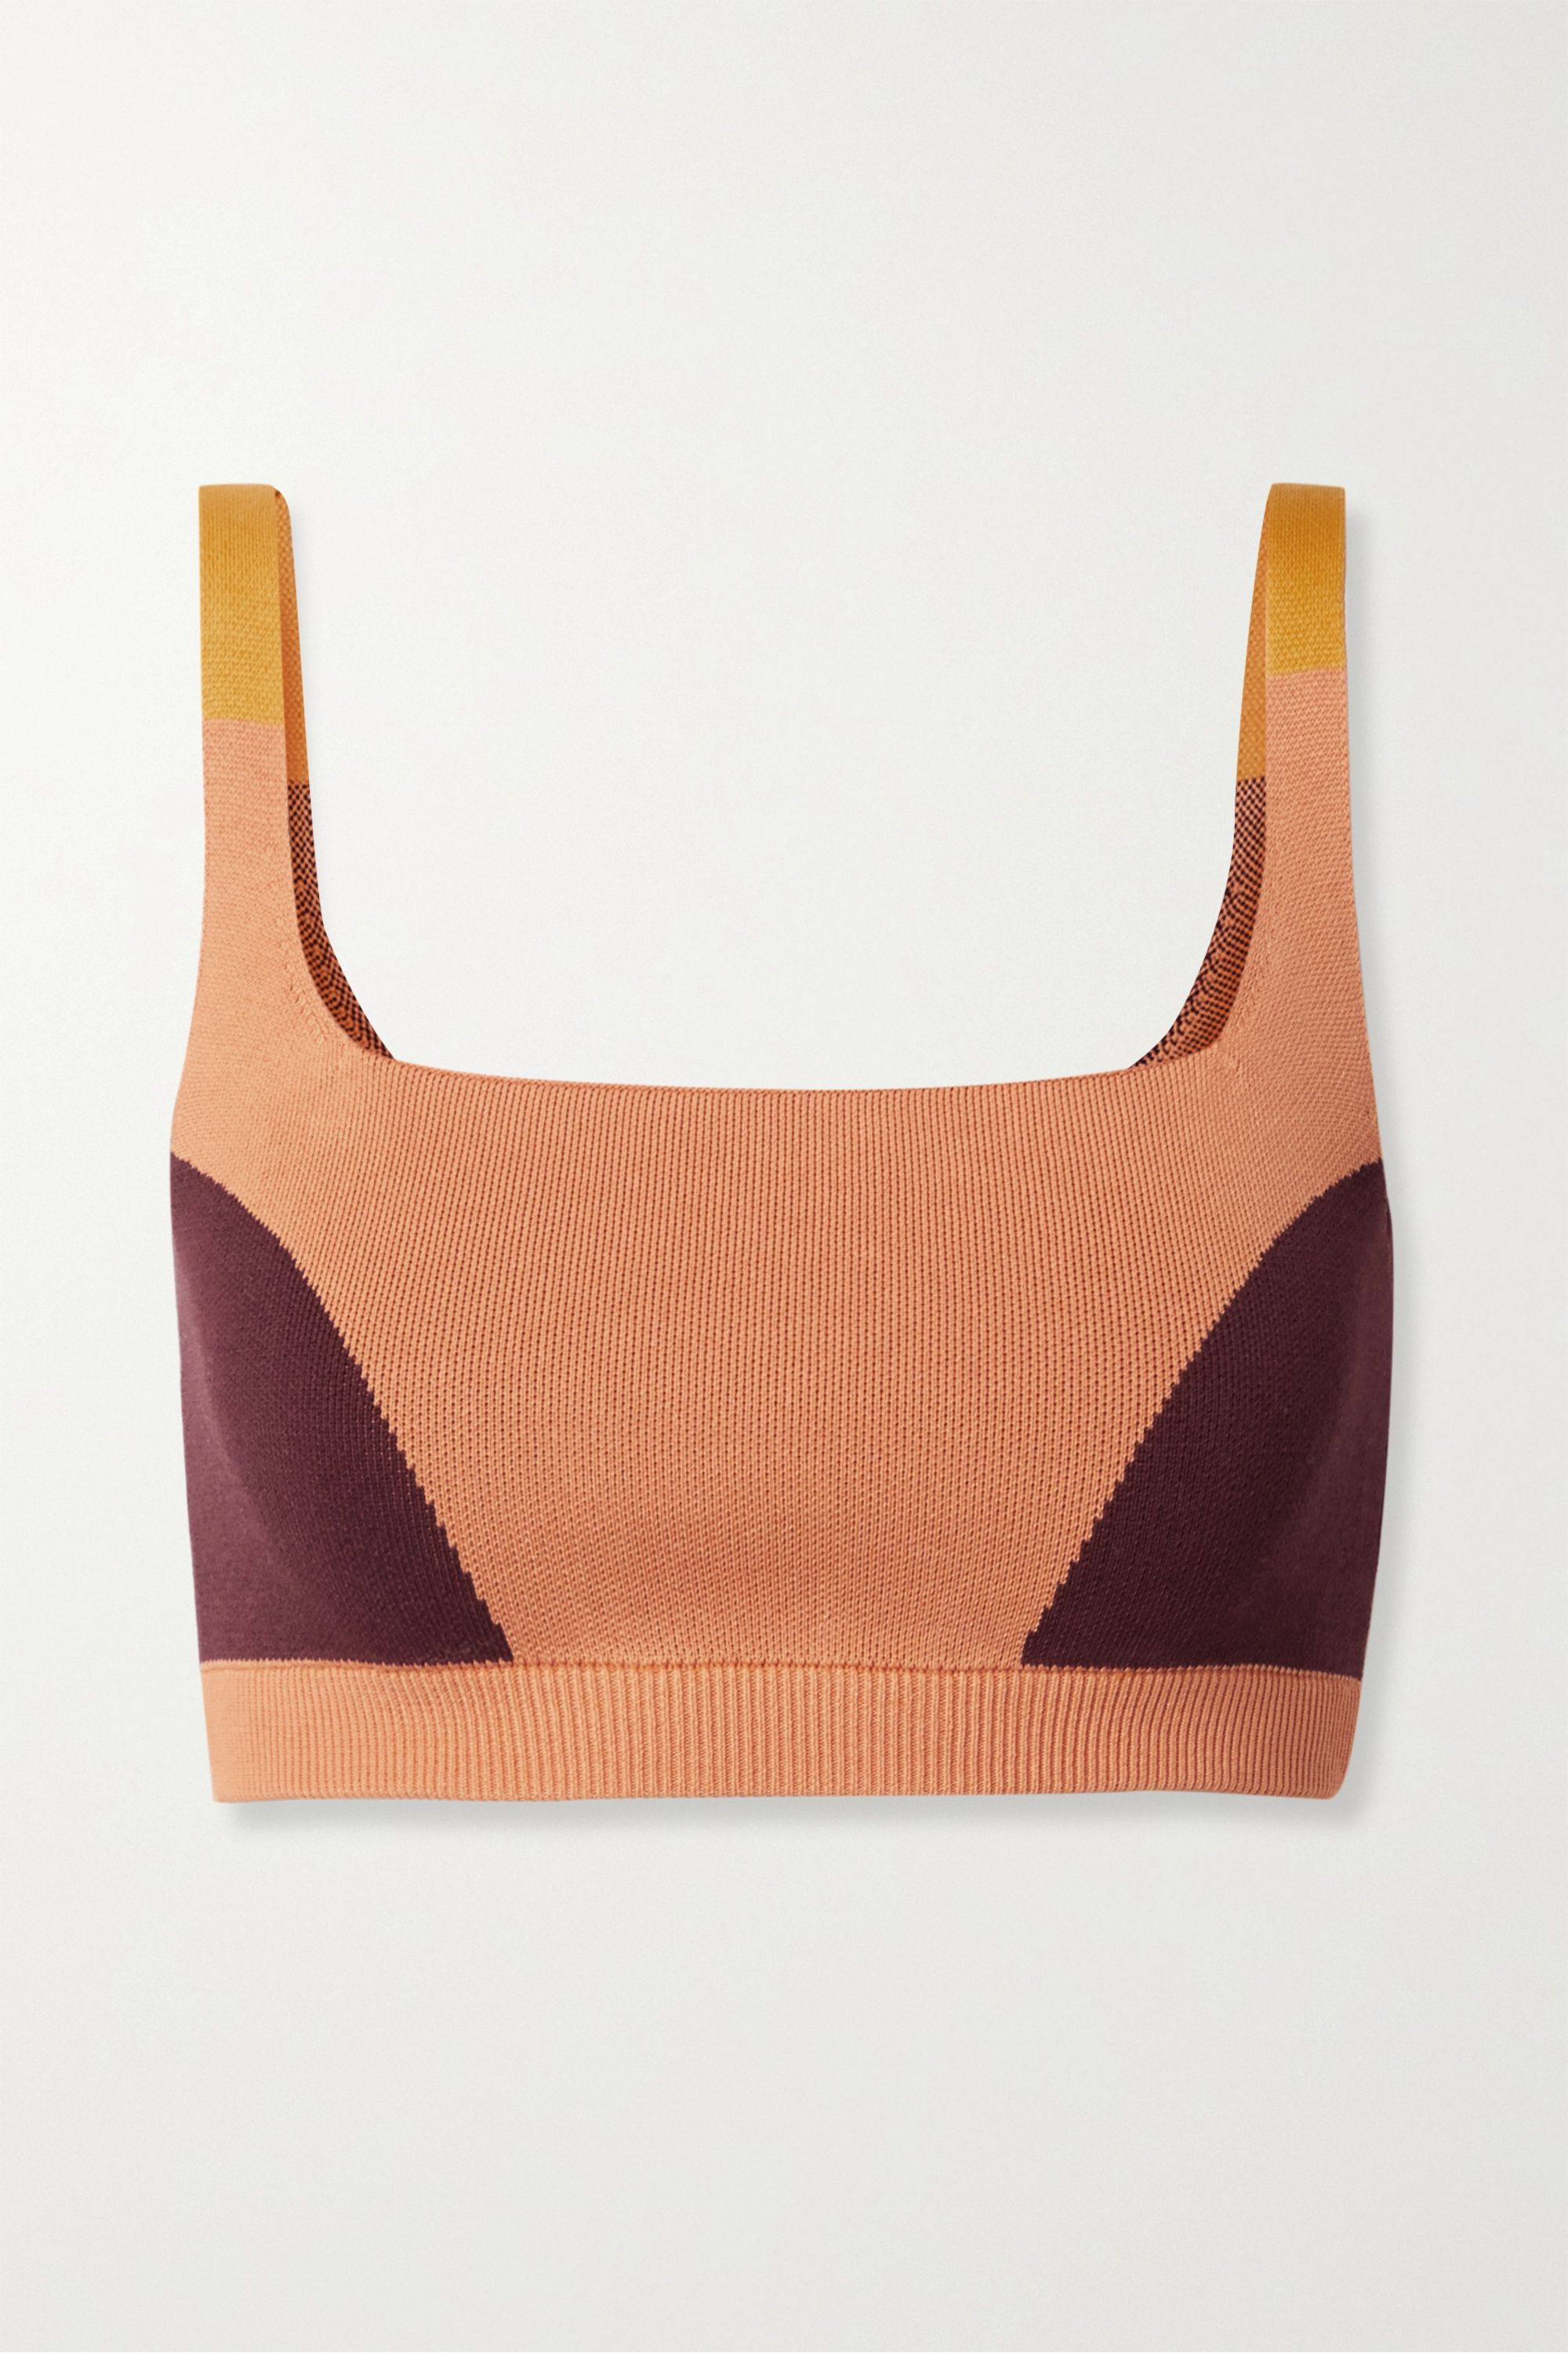 Nagnata + NET SUSTAIN color-block technical-knit stretch-organic cotton sports bra